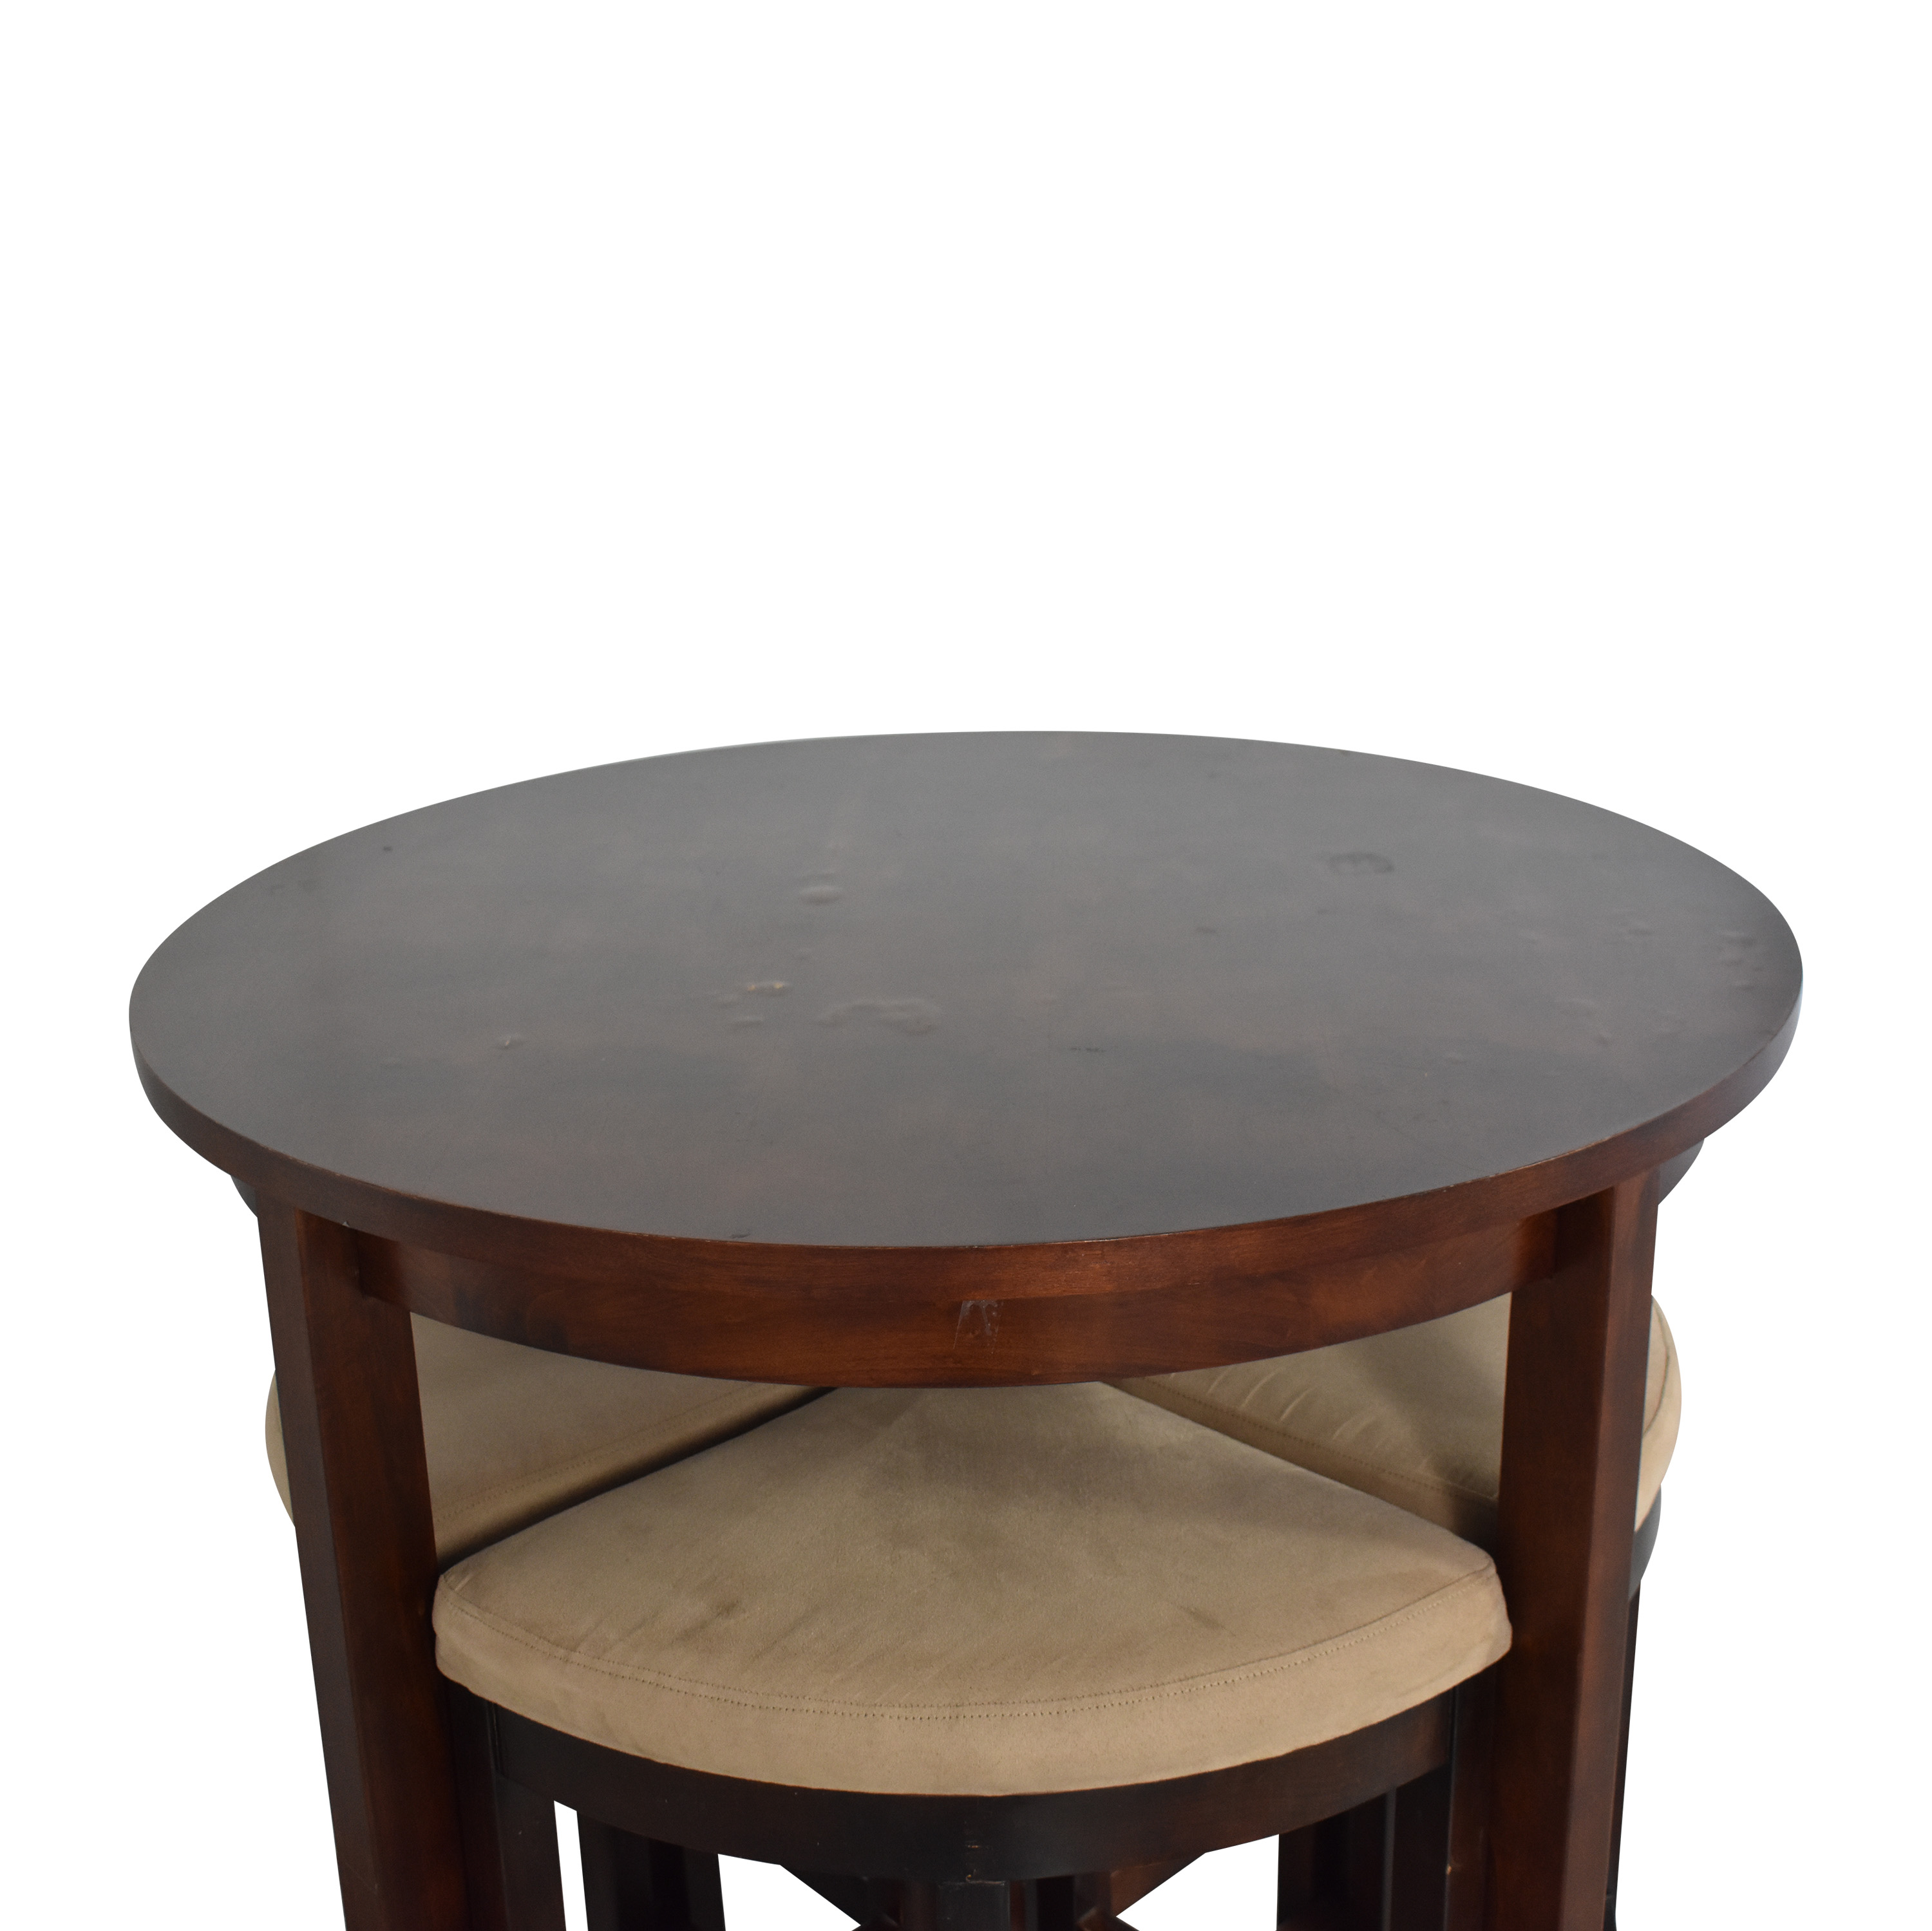 Raymour & Flanigan Round Table and Stools Raymour & Flanigan